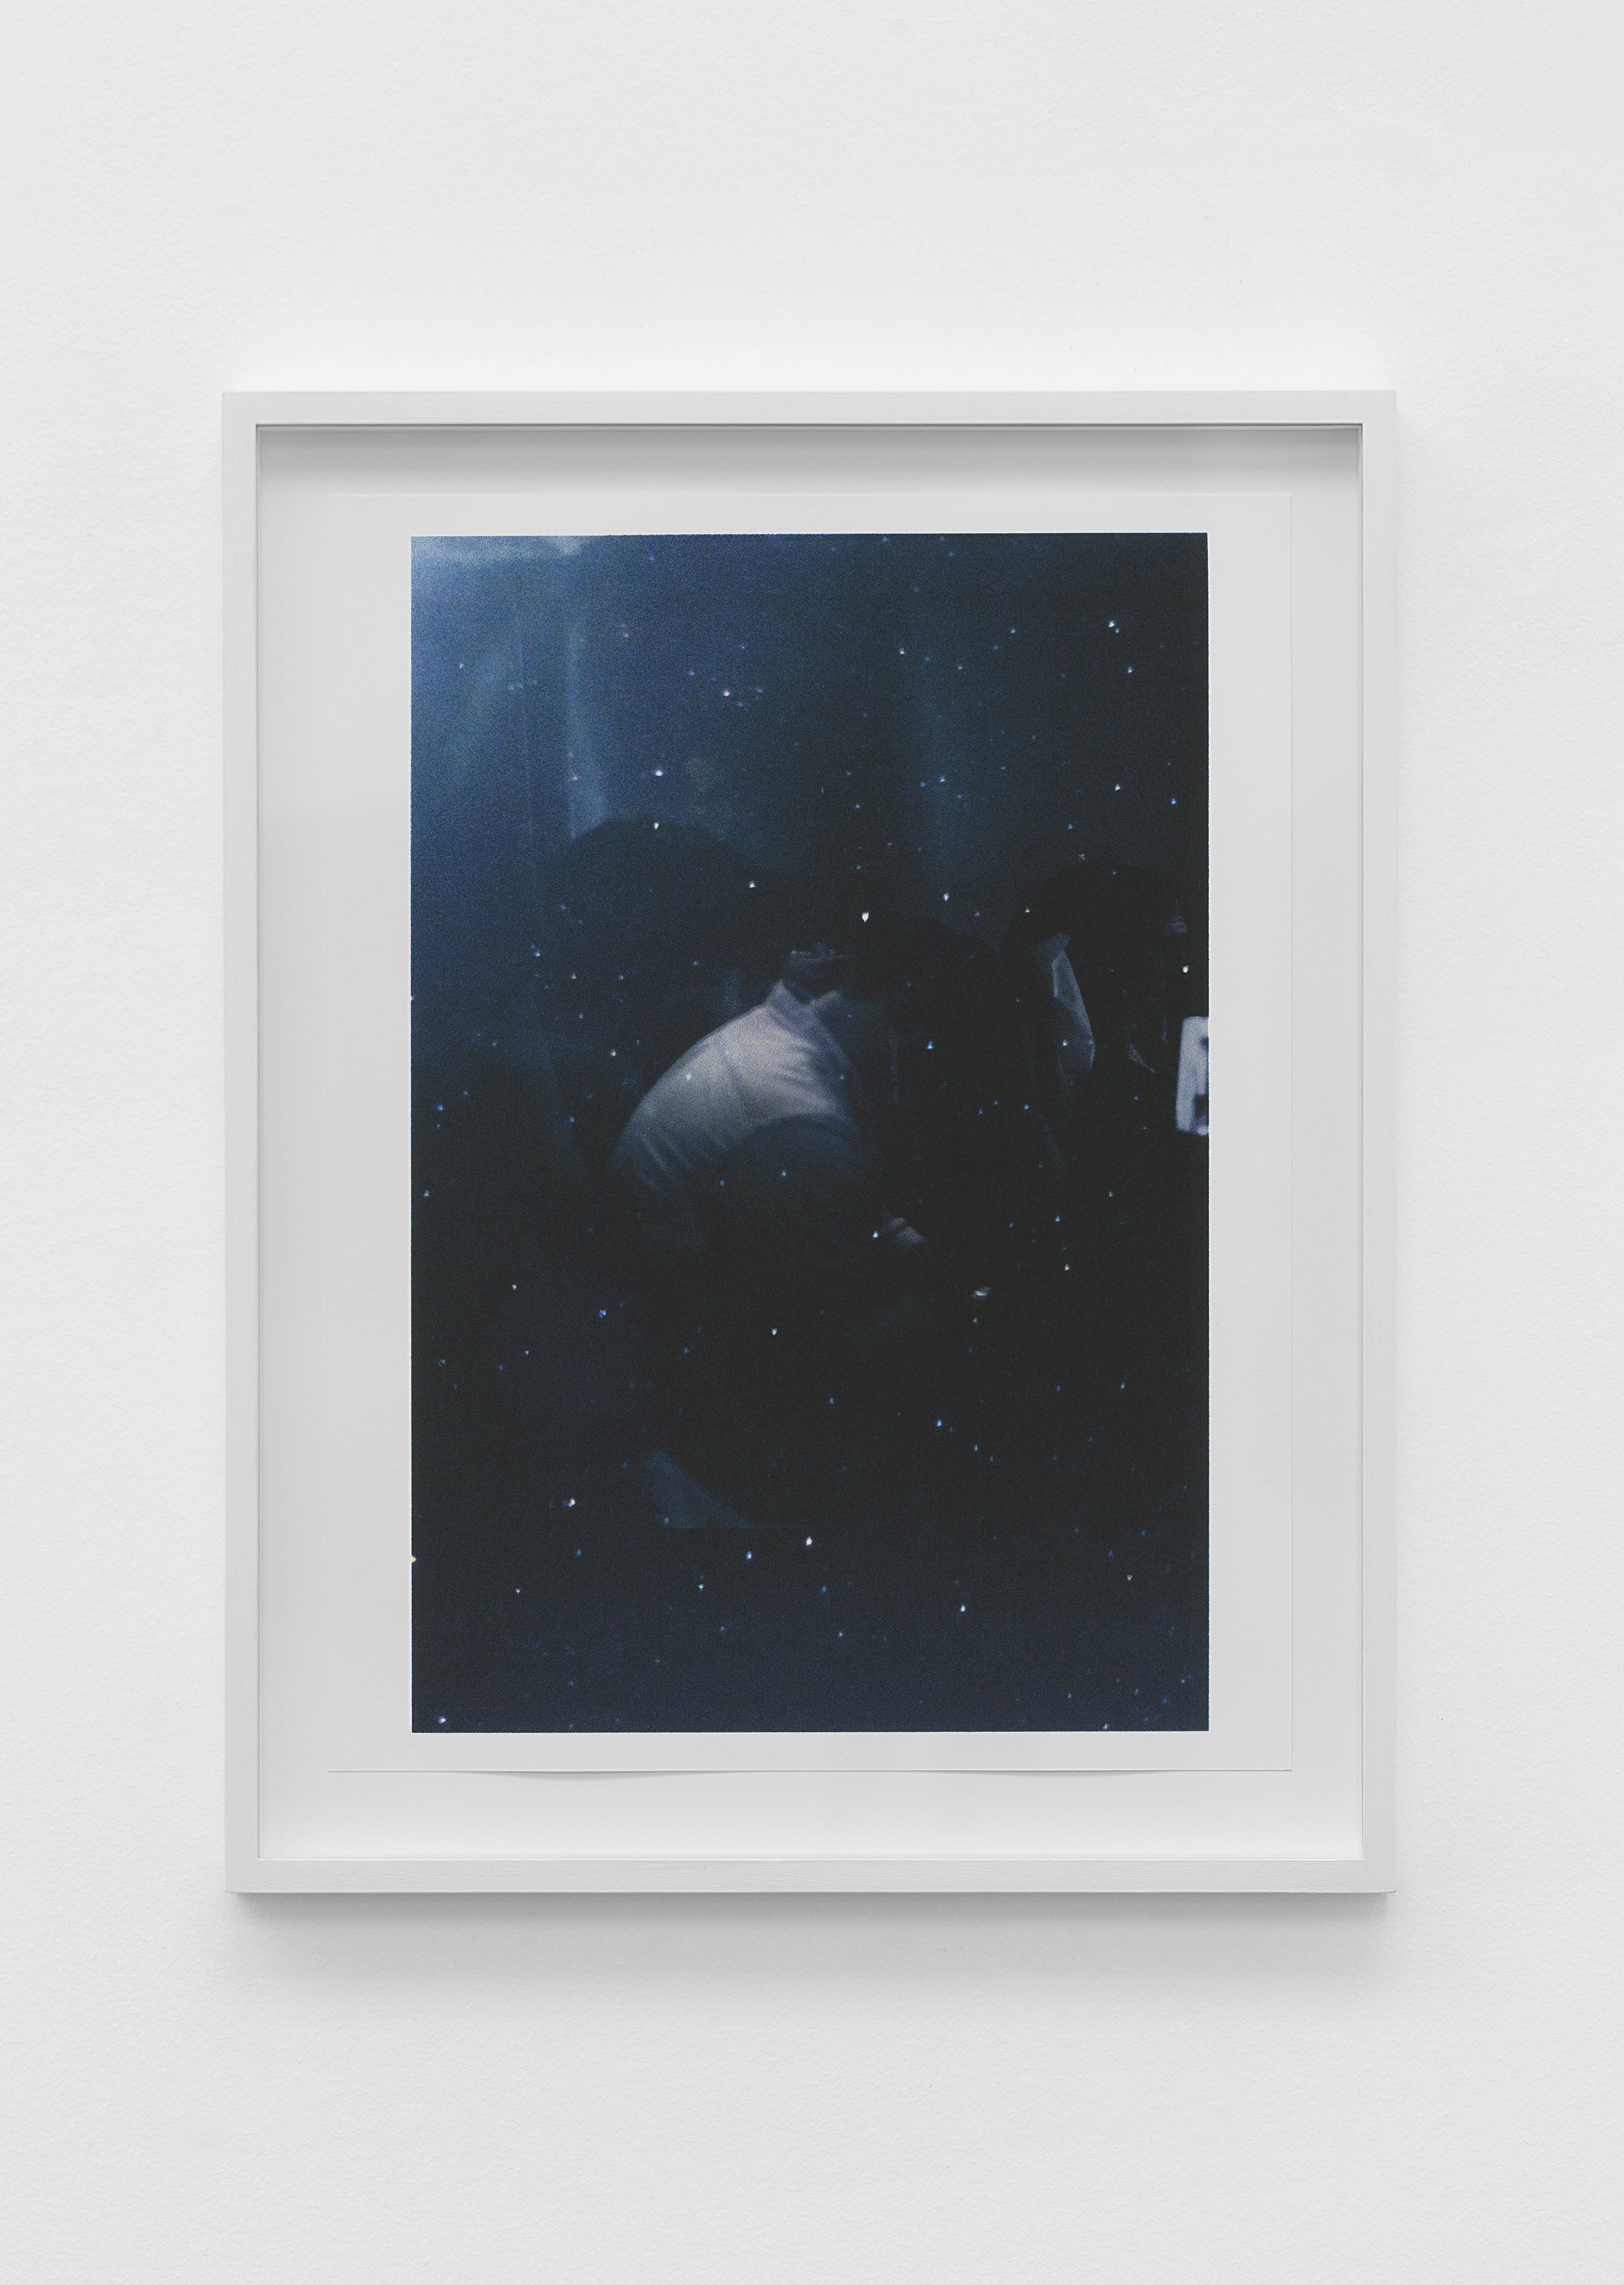 Untitled (figure, glass, stars) , pigment print on paper, sheet: 48.8 × 36.7 cm (19 1/4 × 14 1/2 in), framed: 56.3 × 47.1 cm (22 1/8 × 18 1/2 in), 2019